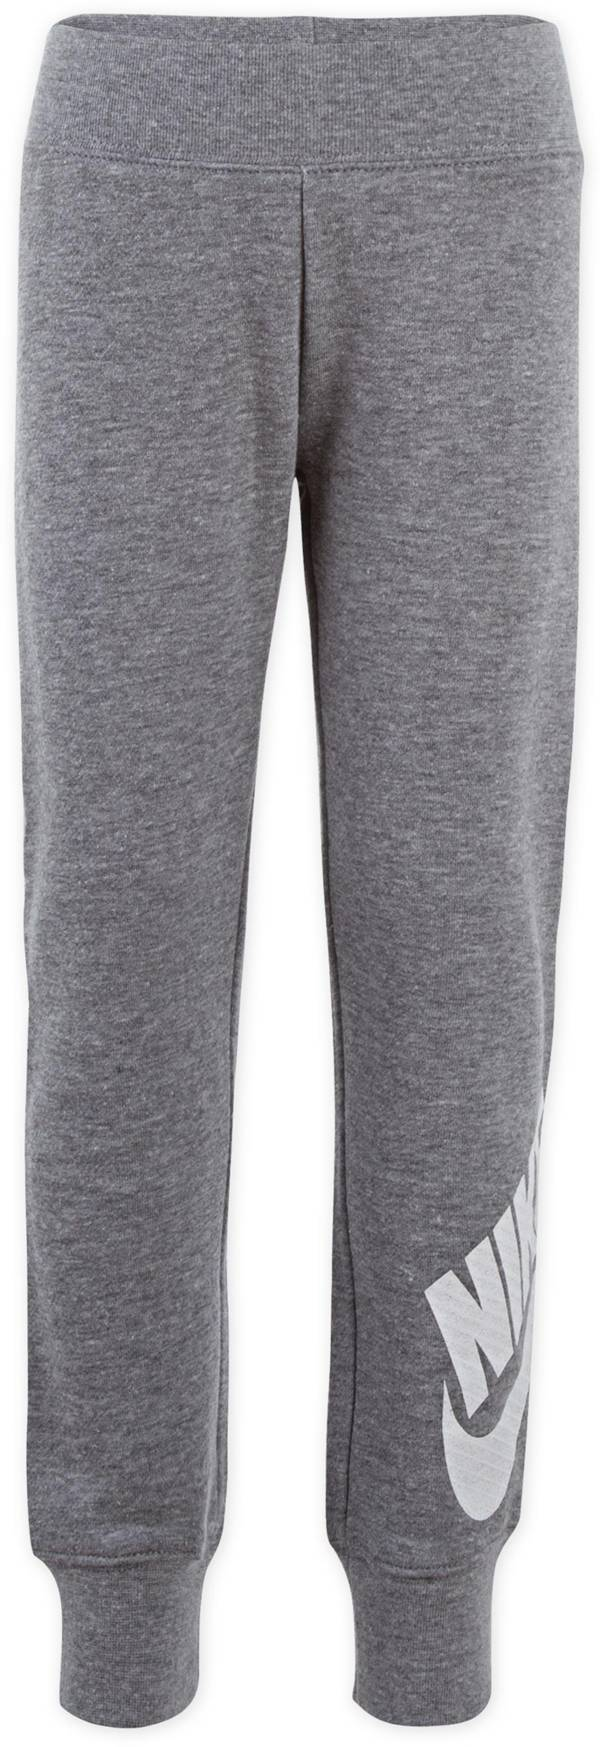 Nike Little Girls' Sportswear French Terry Jogger Pants product image